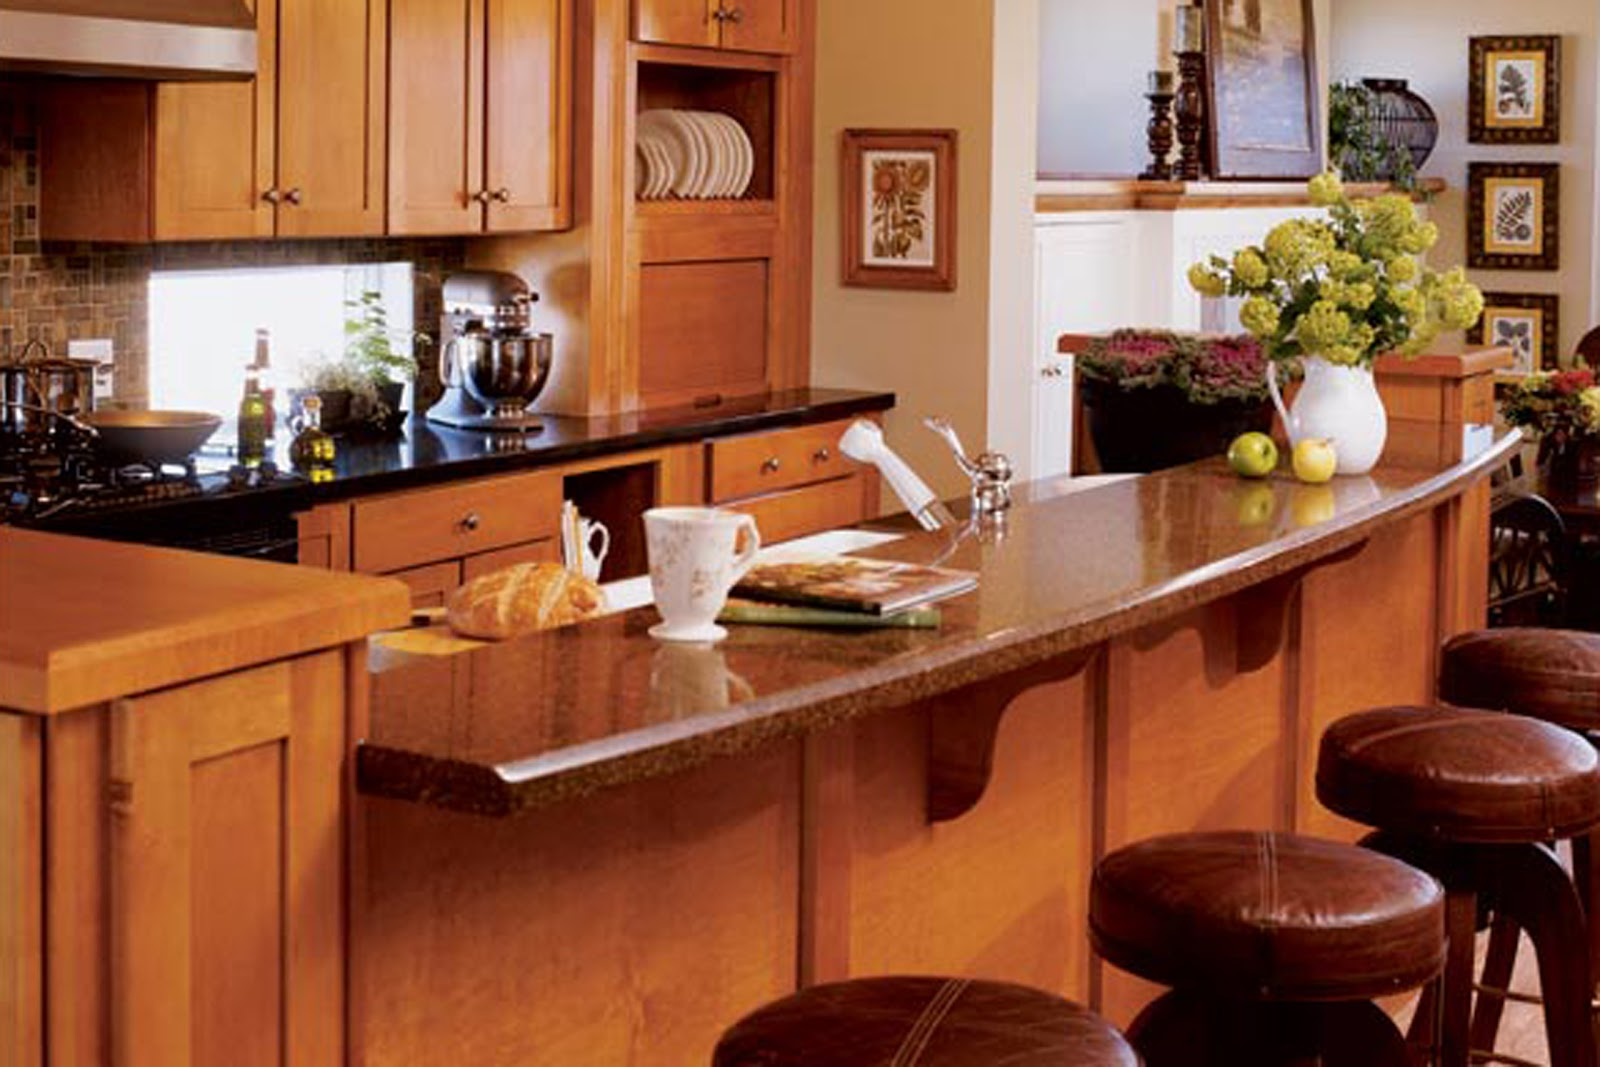 Simply elegant home designs blog home design ideas 3 for Kitchen island ideas small kitchens